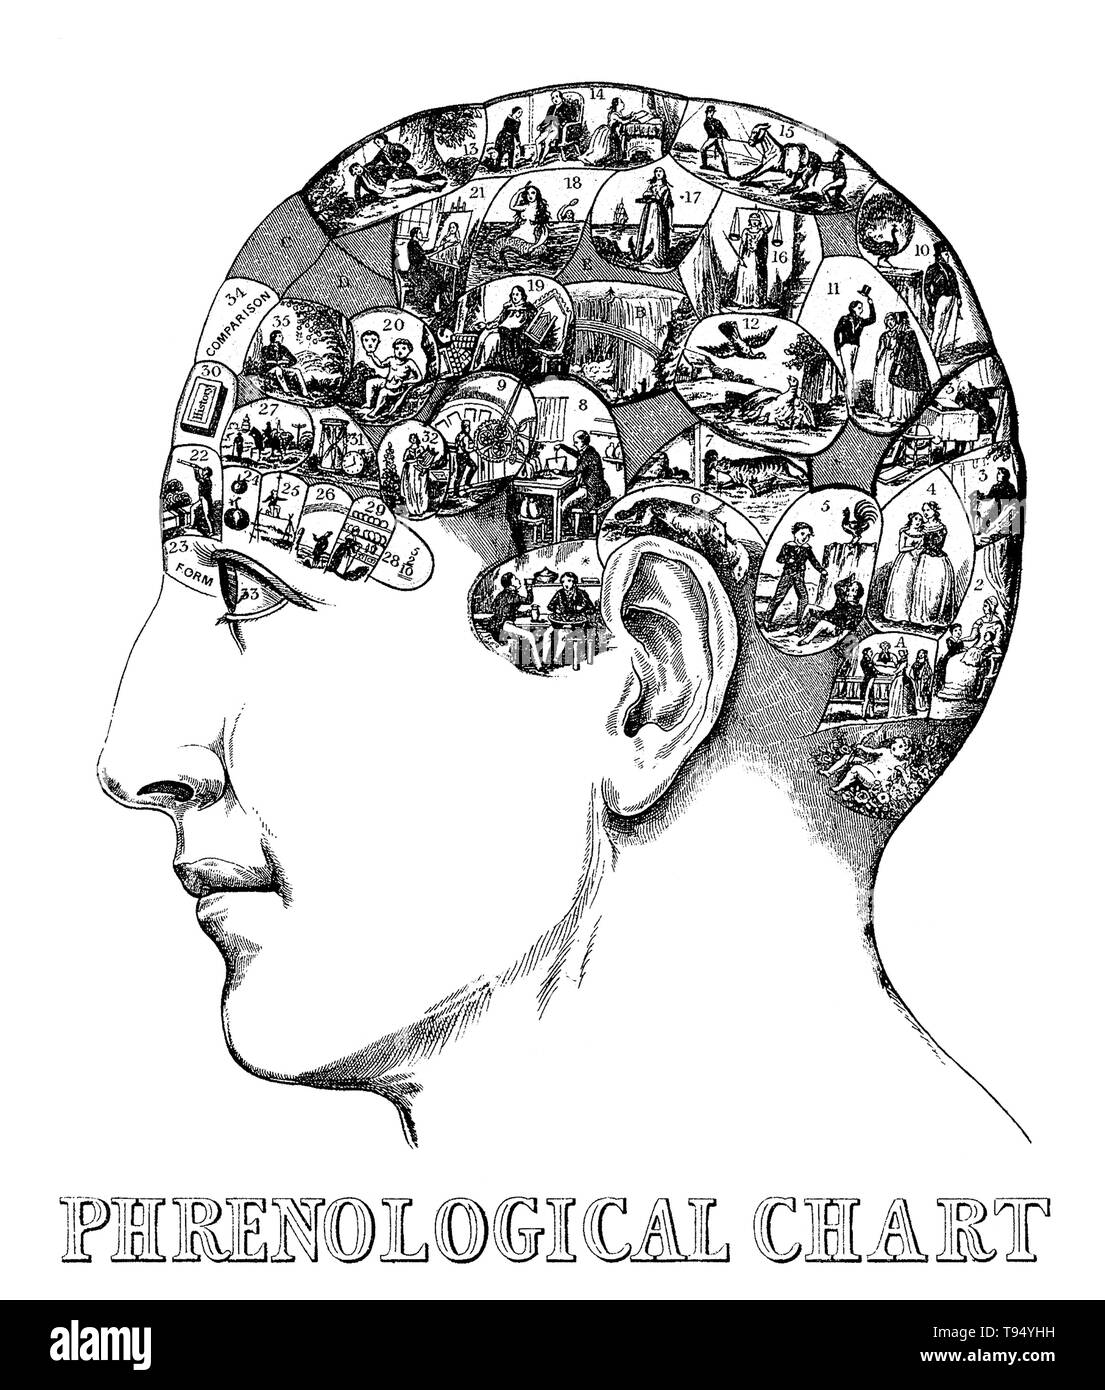 Entitled: 'Head containing over thirty images symbolizing the phrenological faculties by Drs. Gall & Spurzheim.' Phrenology is a pseudoscience primarily focused on measurements of the human skull, based on the concept that the brain is the organ of the mind, and that certain brain areas have localized, specific functions or modules. Although both of those ideas have a basis in reality, phrenology extrapolated beyond empirical knowledge in a way that departed from science. - Stock Image